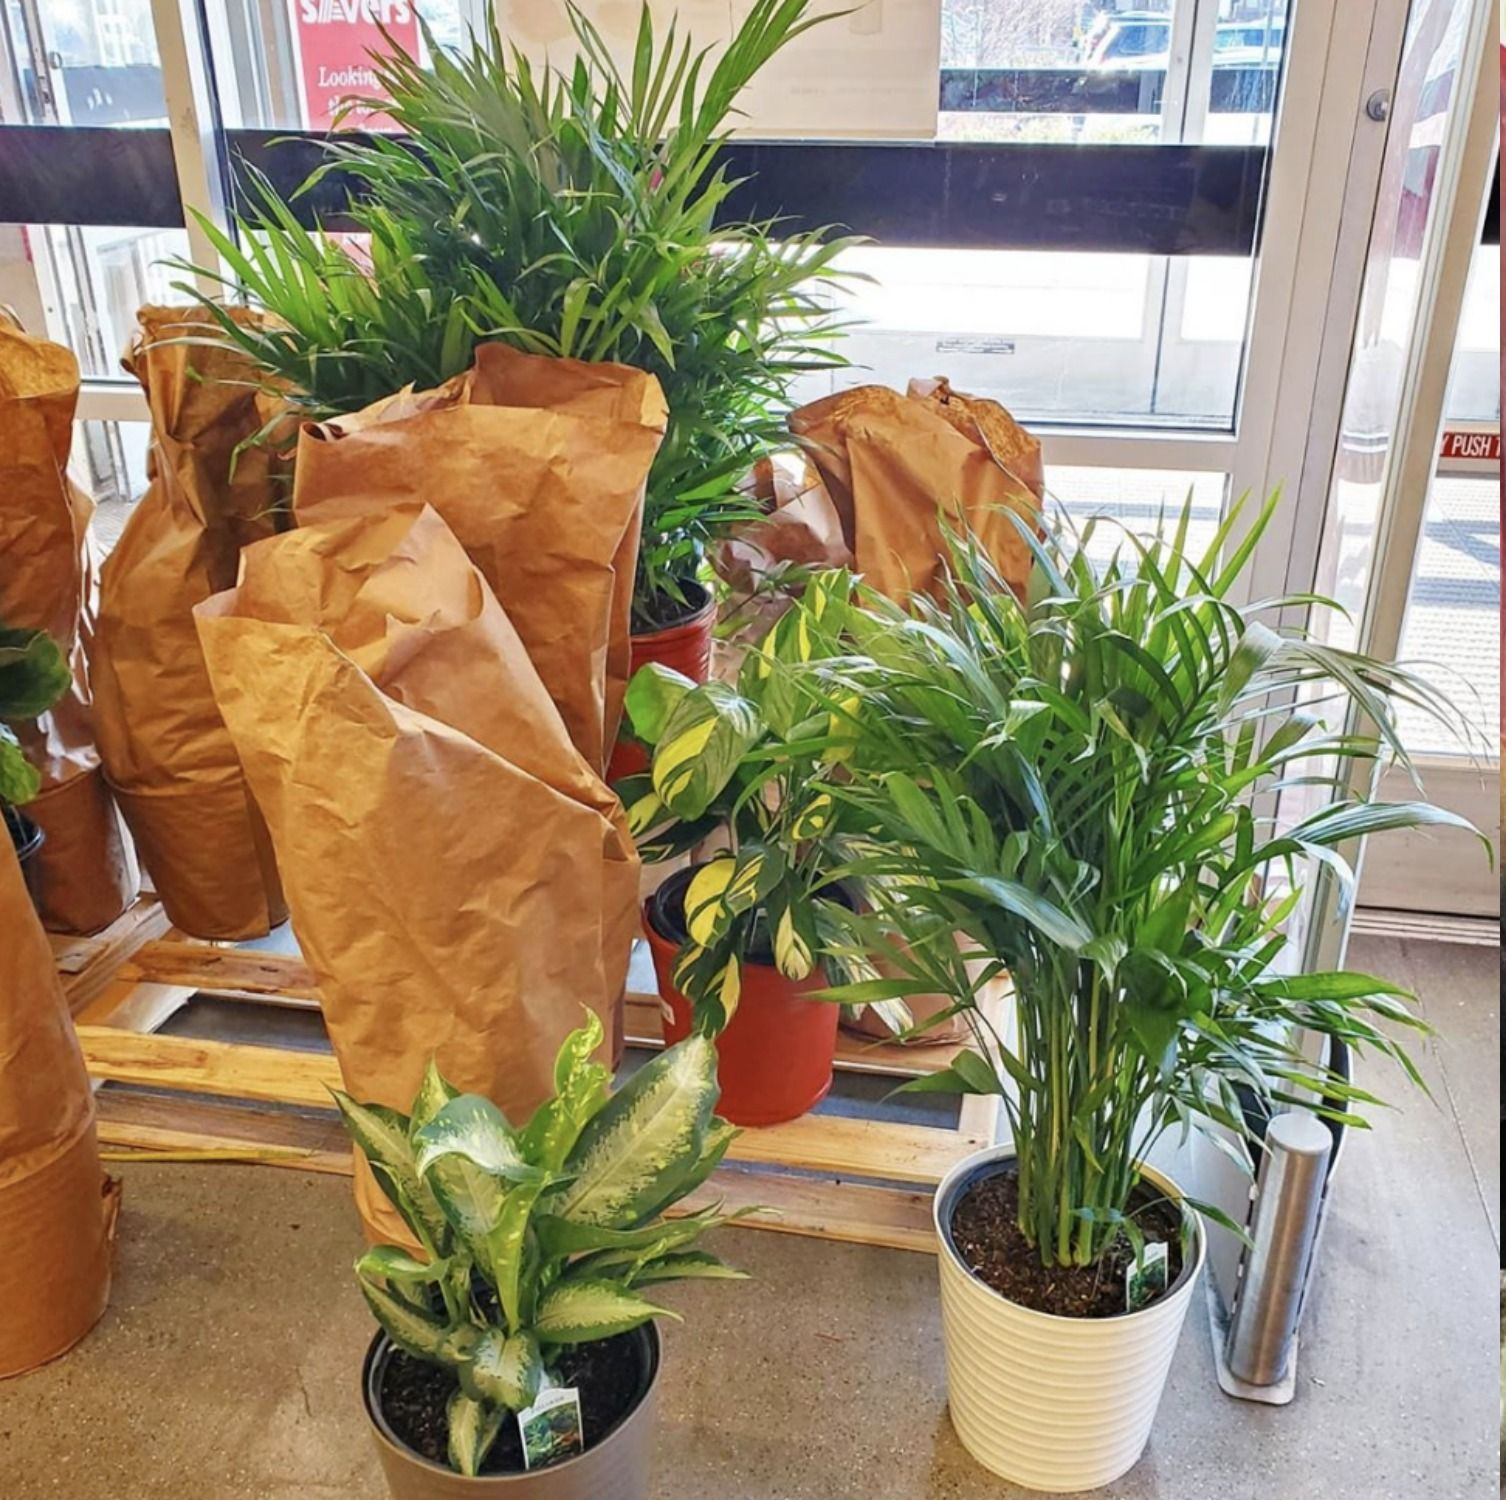 Aldi Is Selling These Giant Tropical Houseplants For Only 400 x 300